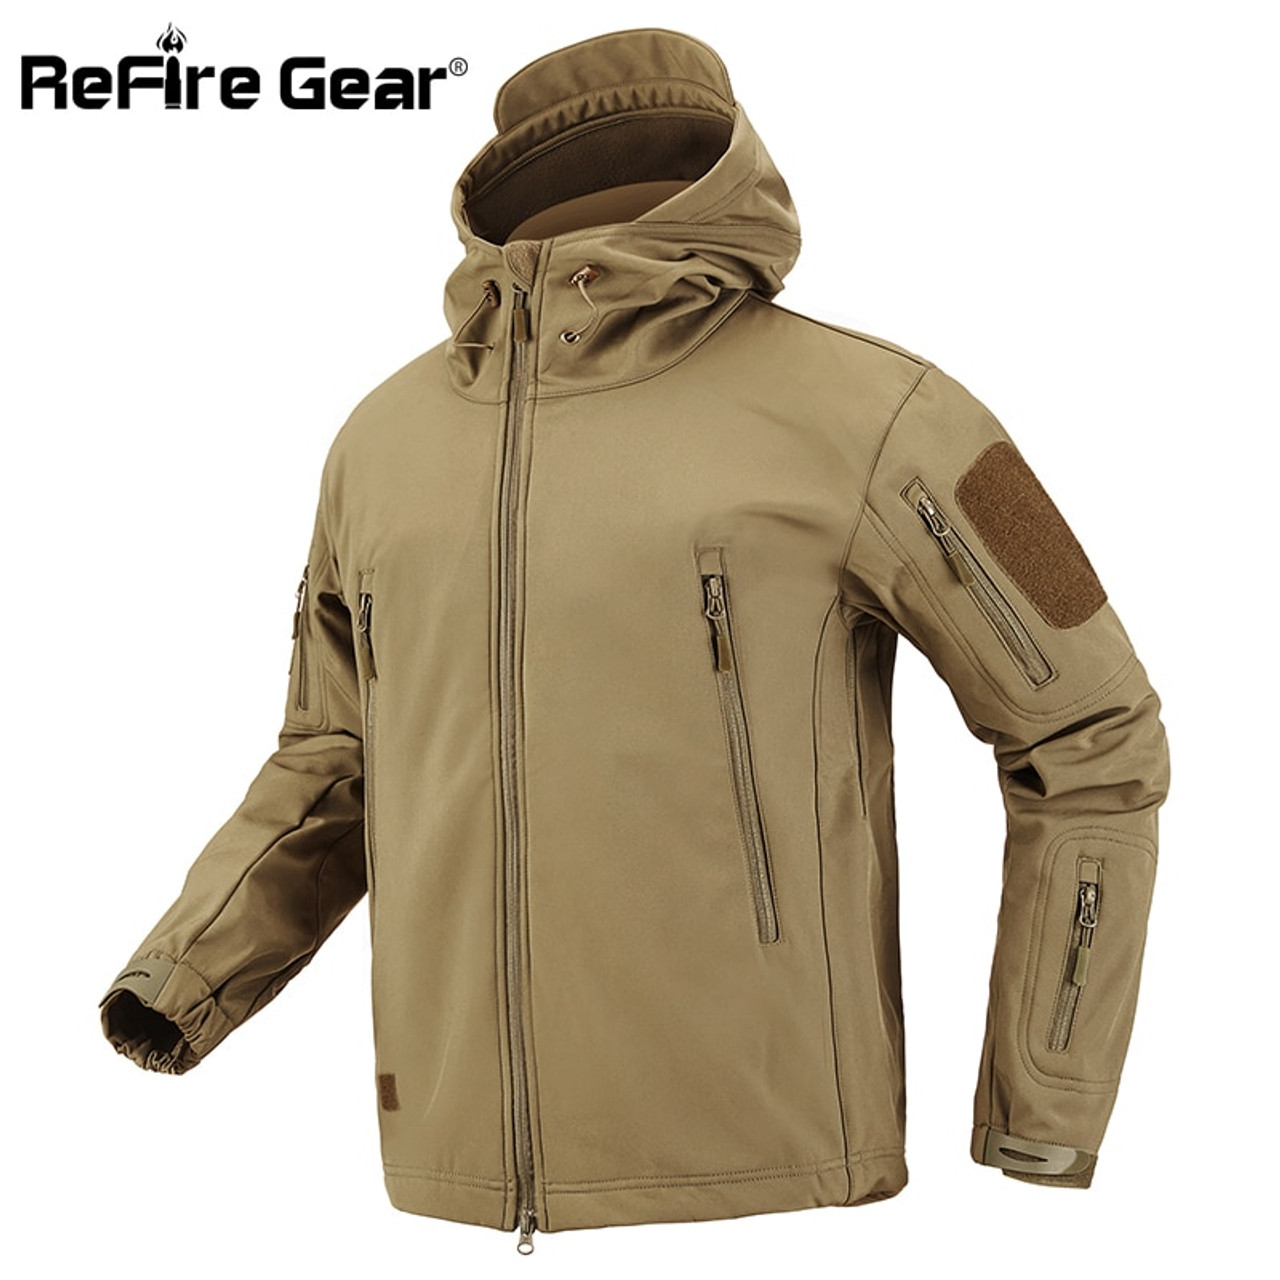 361420f06 ... ReFire Gear Shark Skin Soft Shell Tactical Military Jacket Men  Waterproof Fleece Coat Army Clothes Camouflage ...